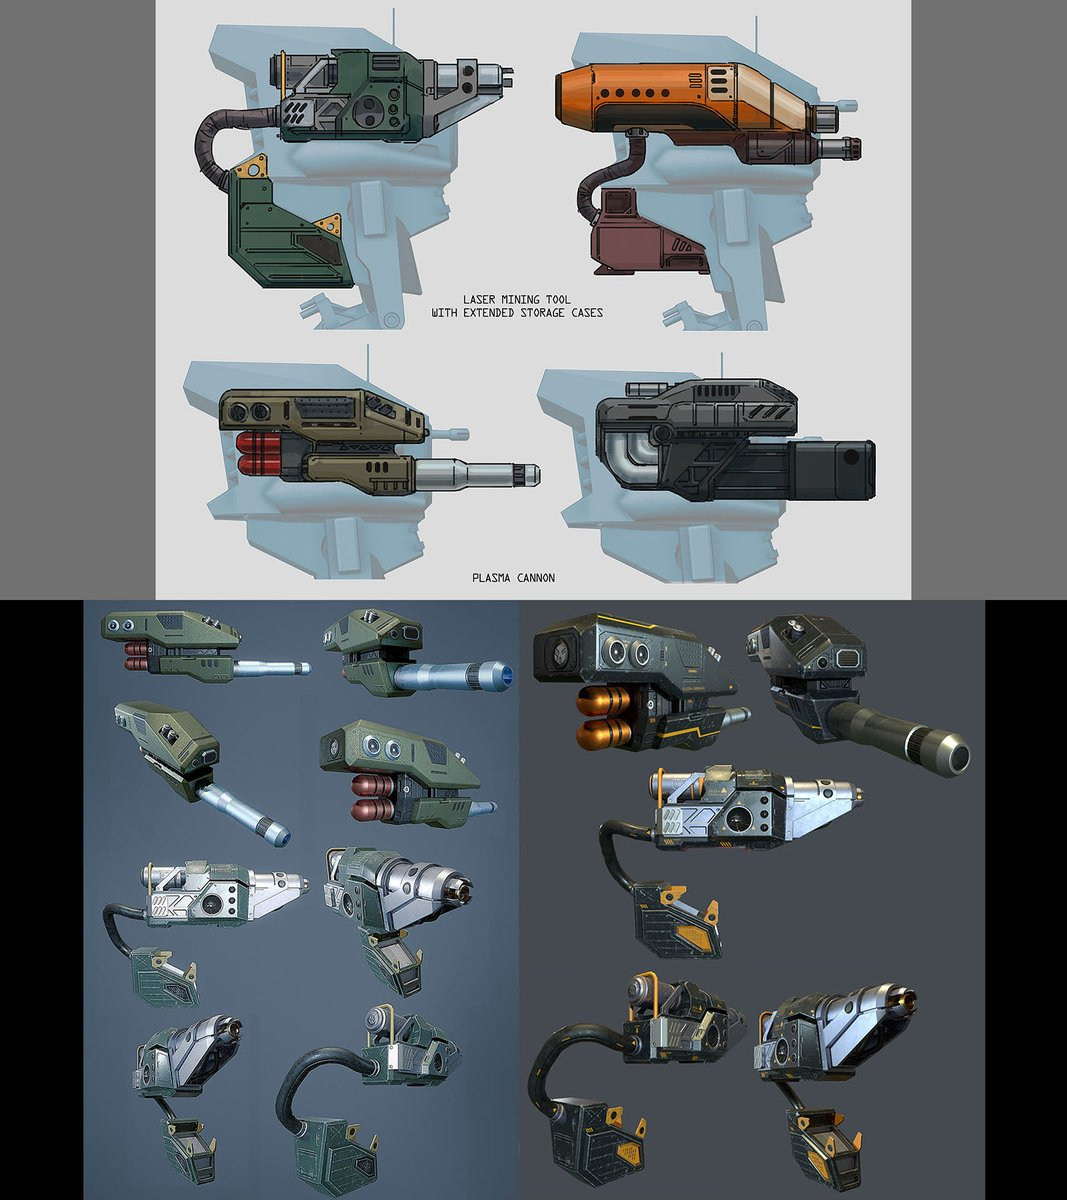 from #conceptart to 3d model - mining laser &amp; plasma cannon for the scout mech in #pantropy... by #nautabotnews <br>http://pic.twitter.com/s91SB0M1GW